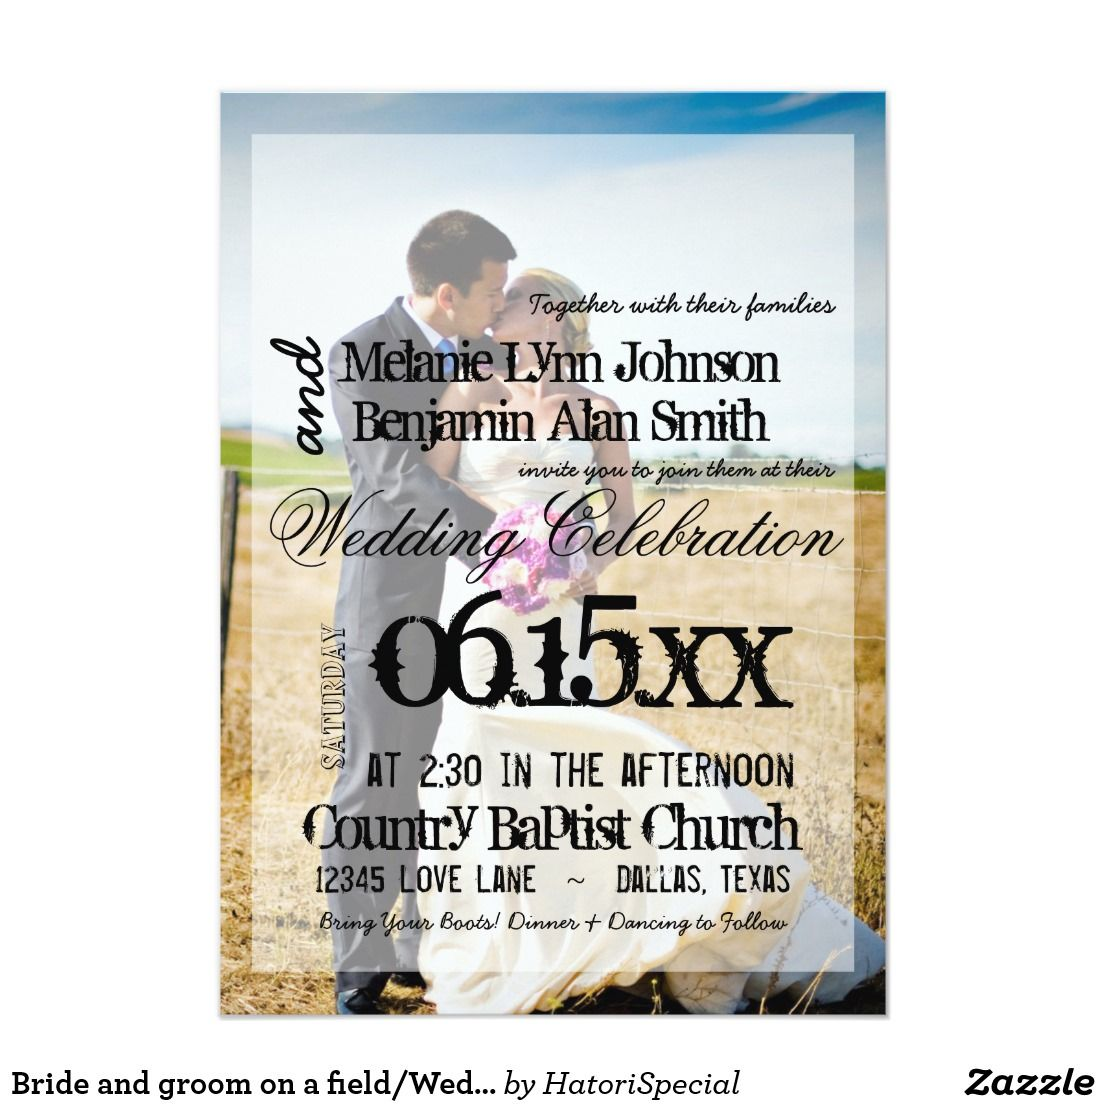 Bride And Groom On A Field Wedding Invitation Love Photo Thank